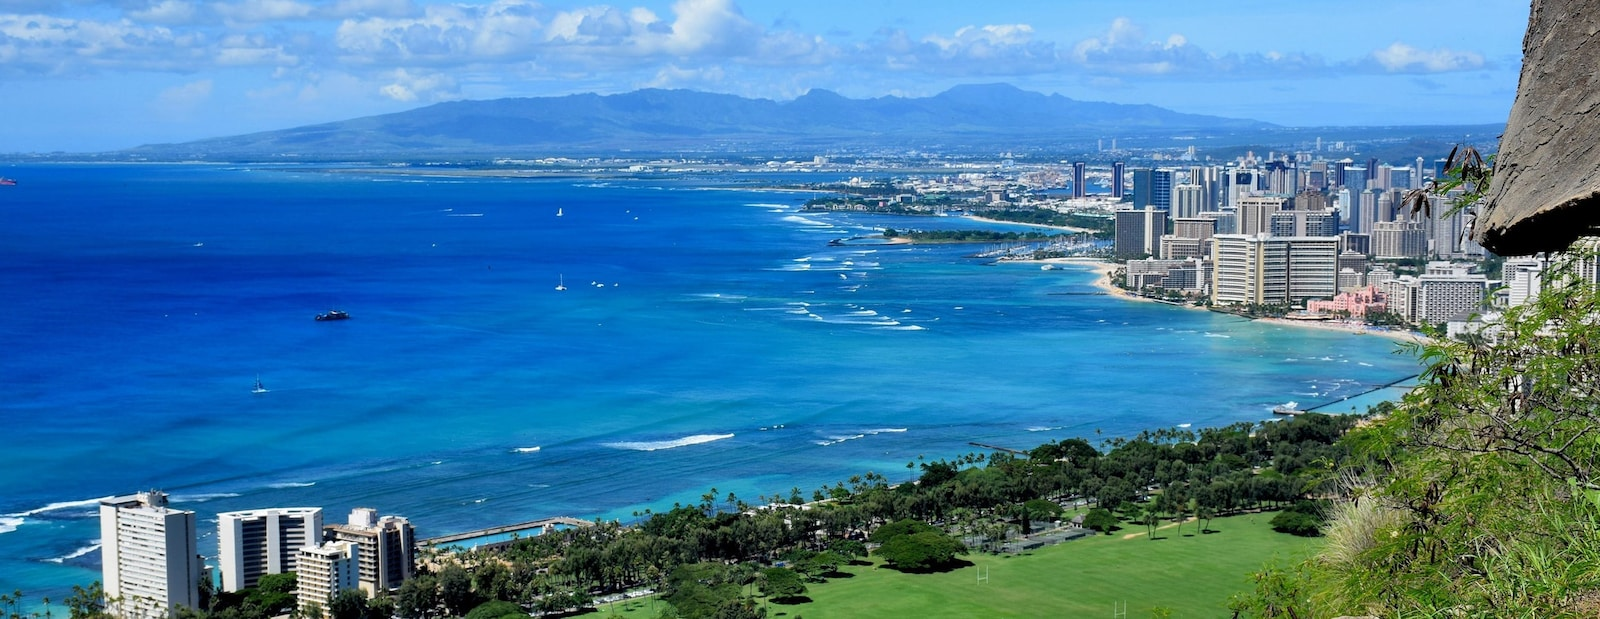 Vacation rentals in O'ahu